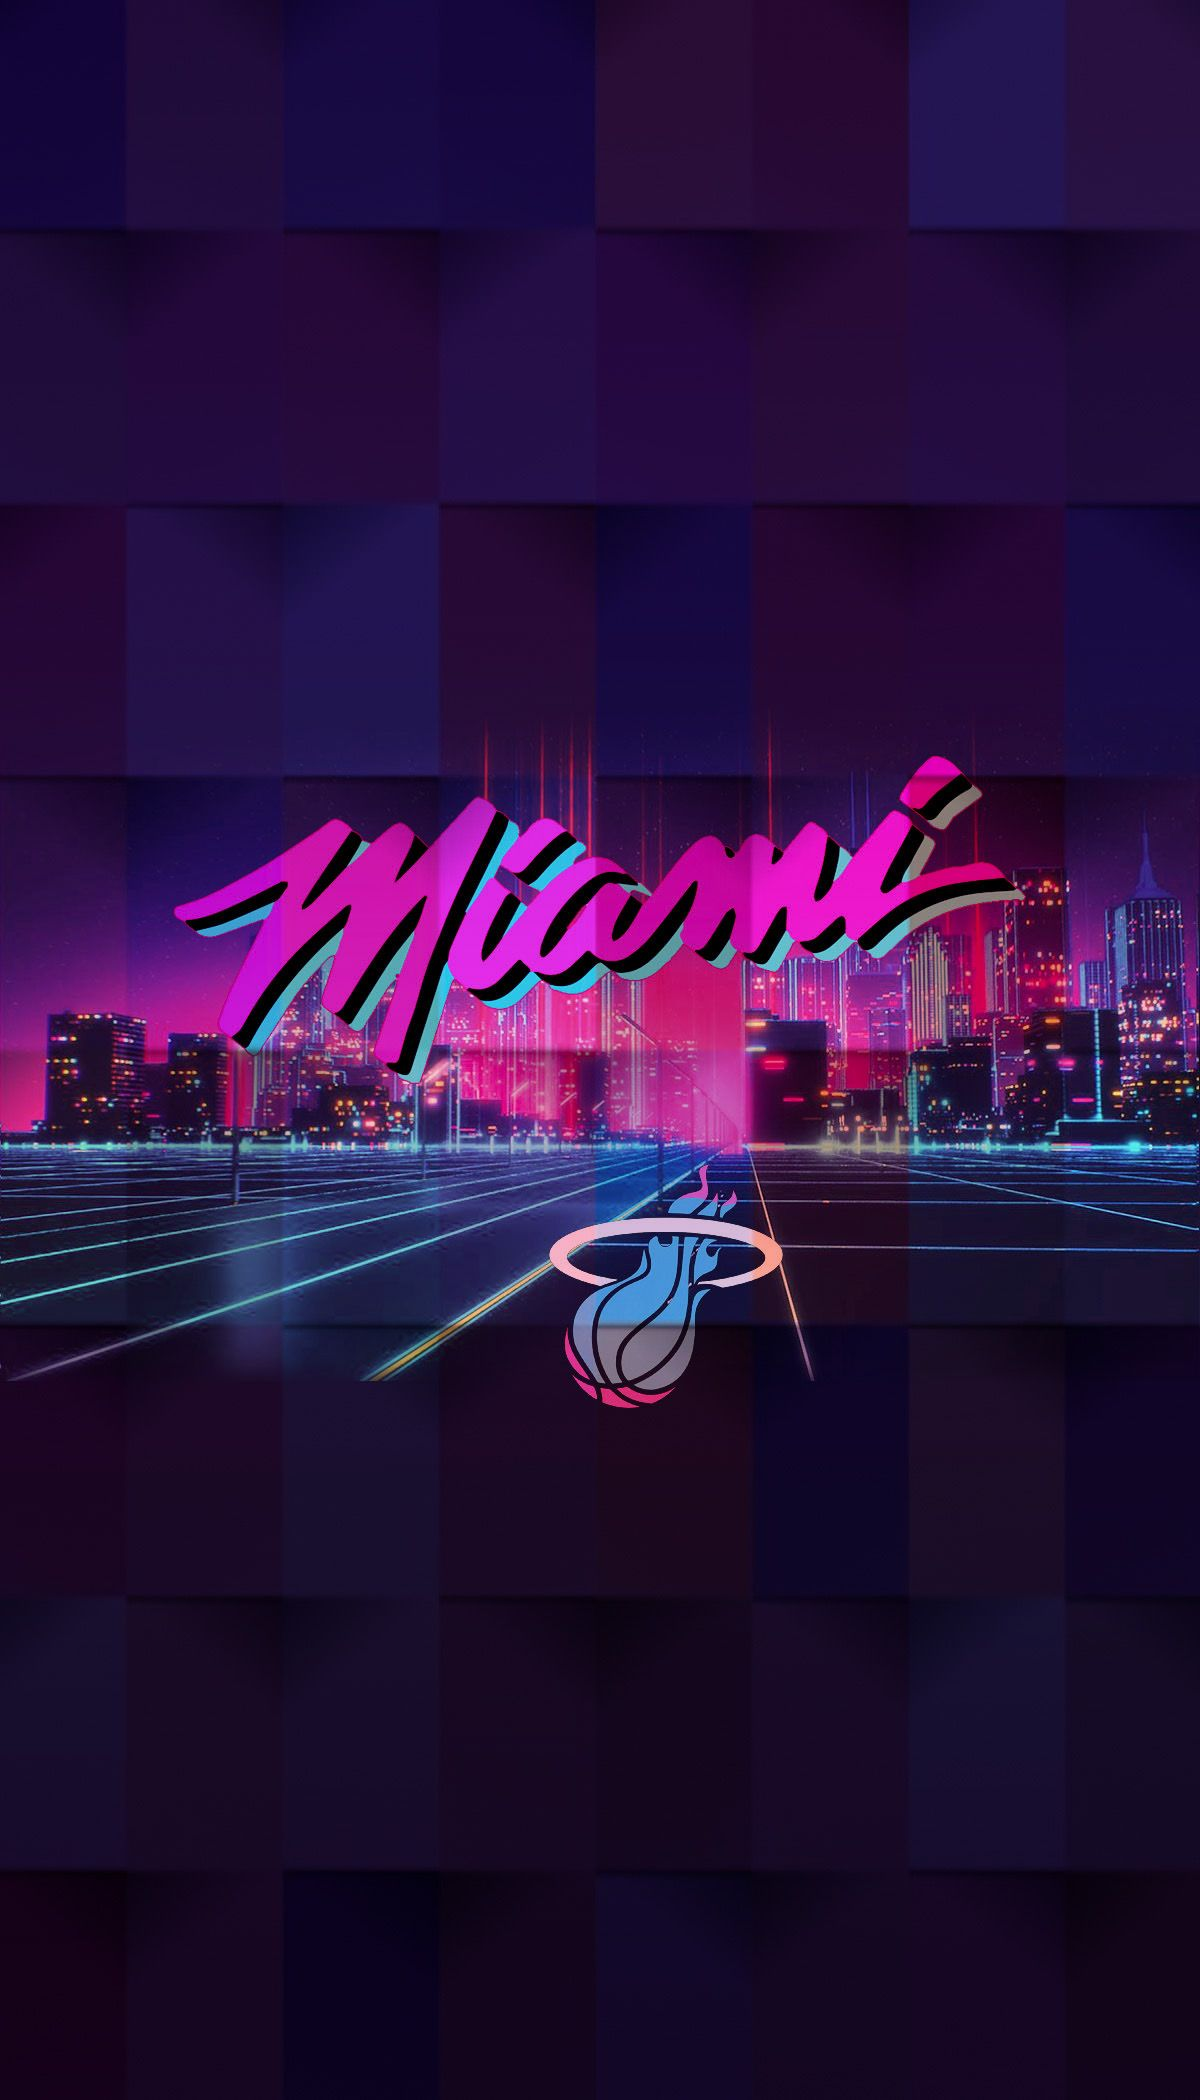 Miami Heat Wallpapers Iphone - KoLPaPer - Awesome Free HD ...